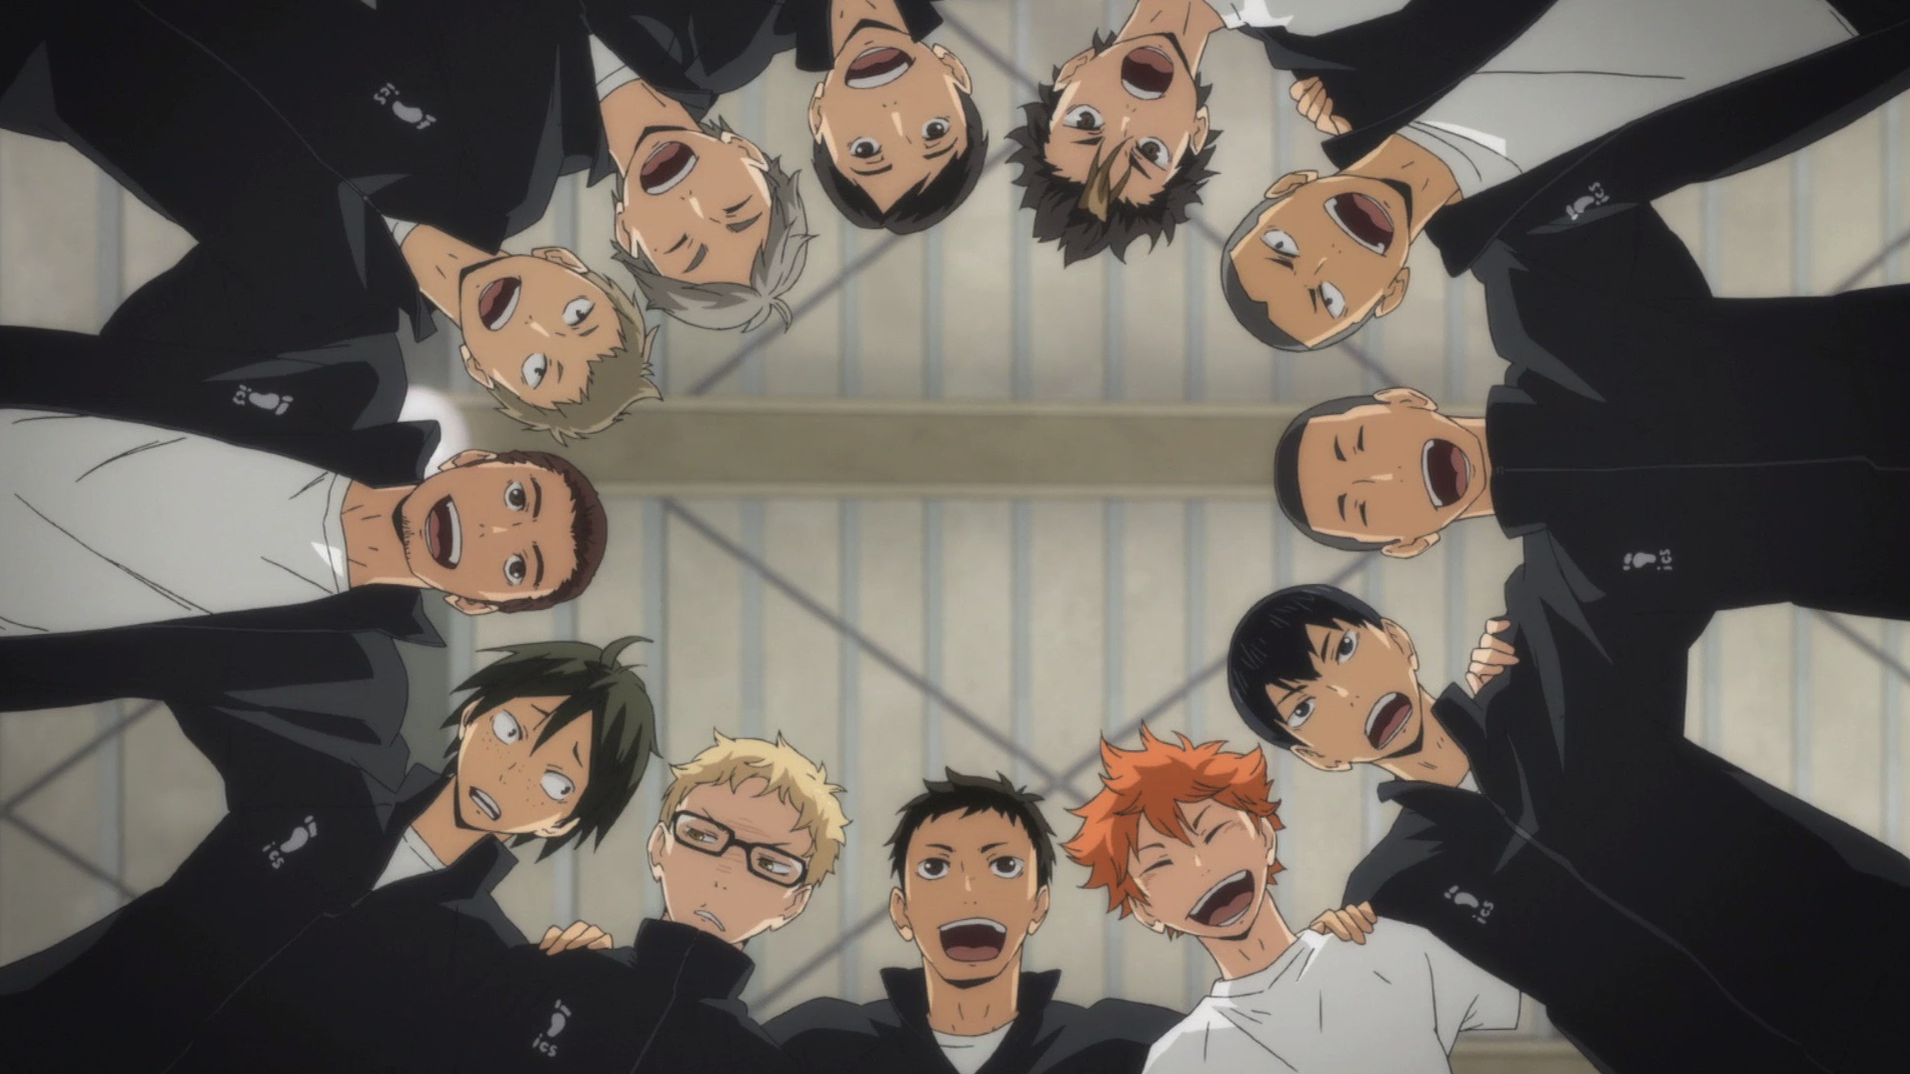 The members of Karasuno's high school volleyball club doing a team huddle